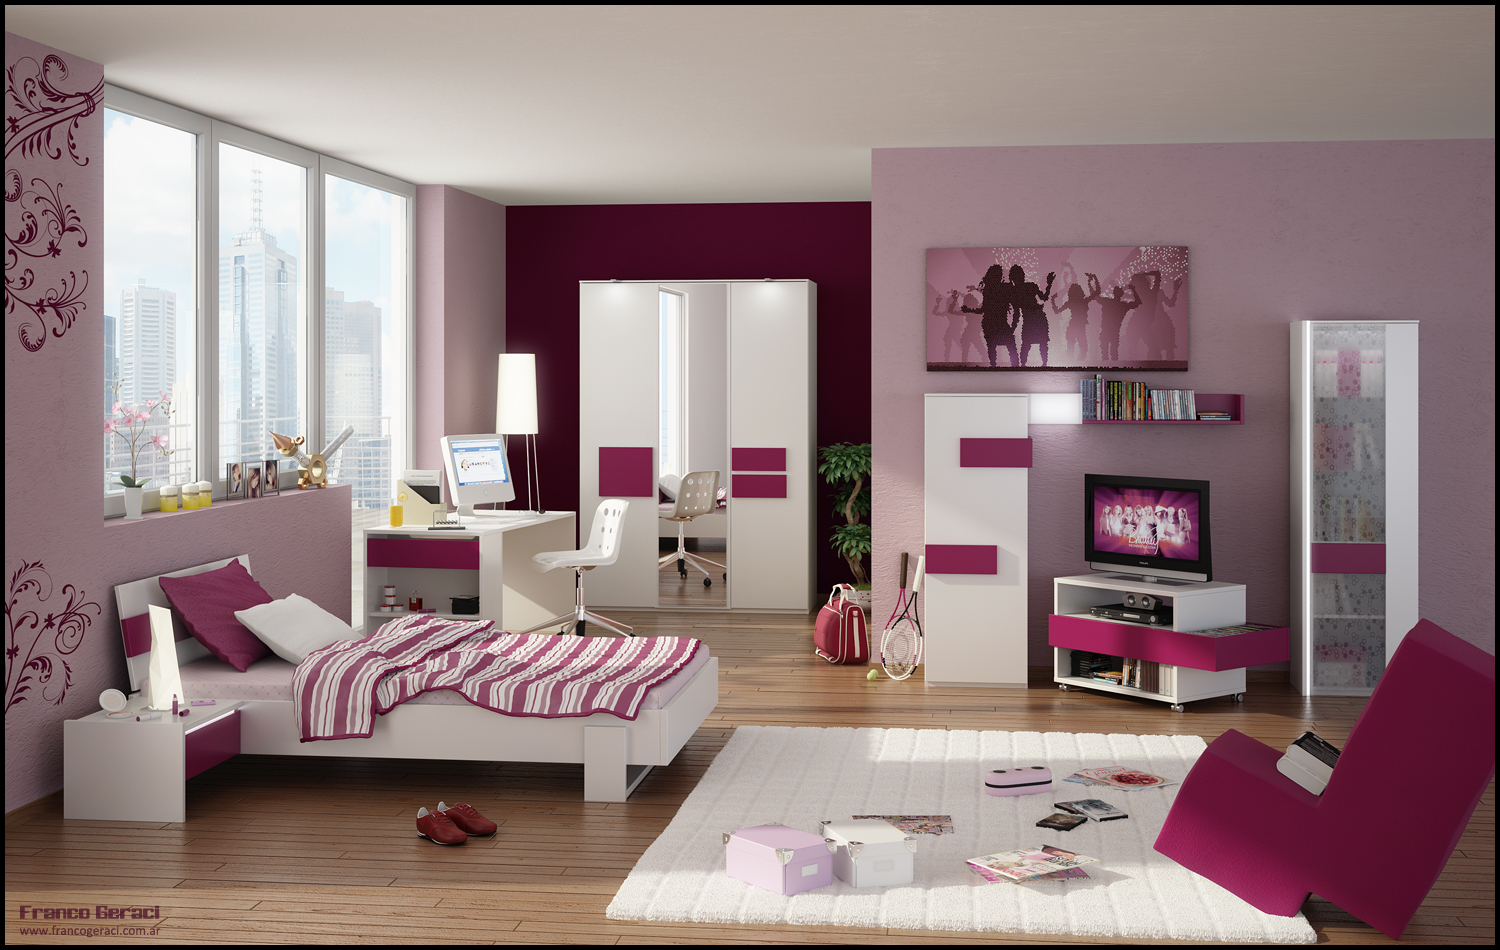 Room Styles Amusing Of Teenage Girls Room Design Ideas Pictures